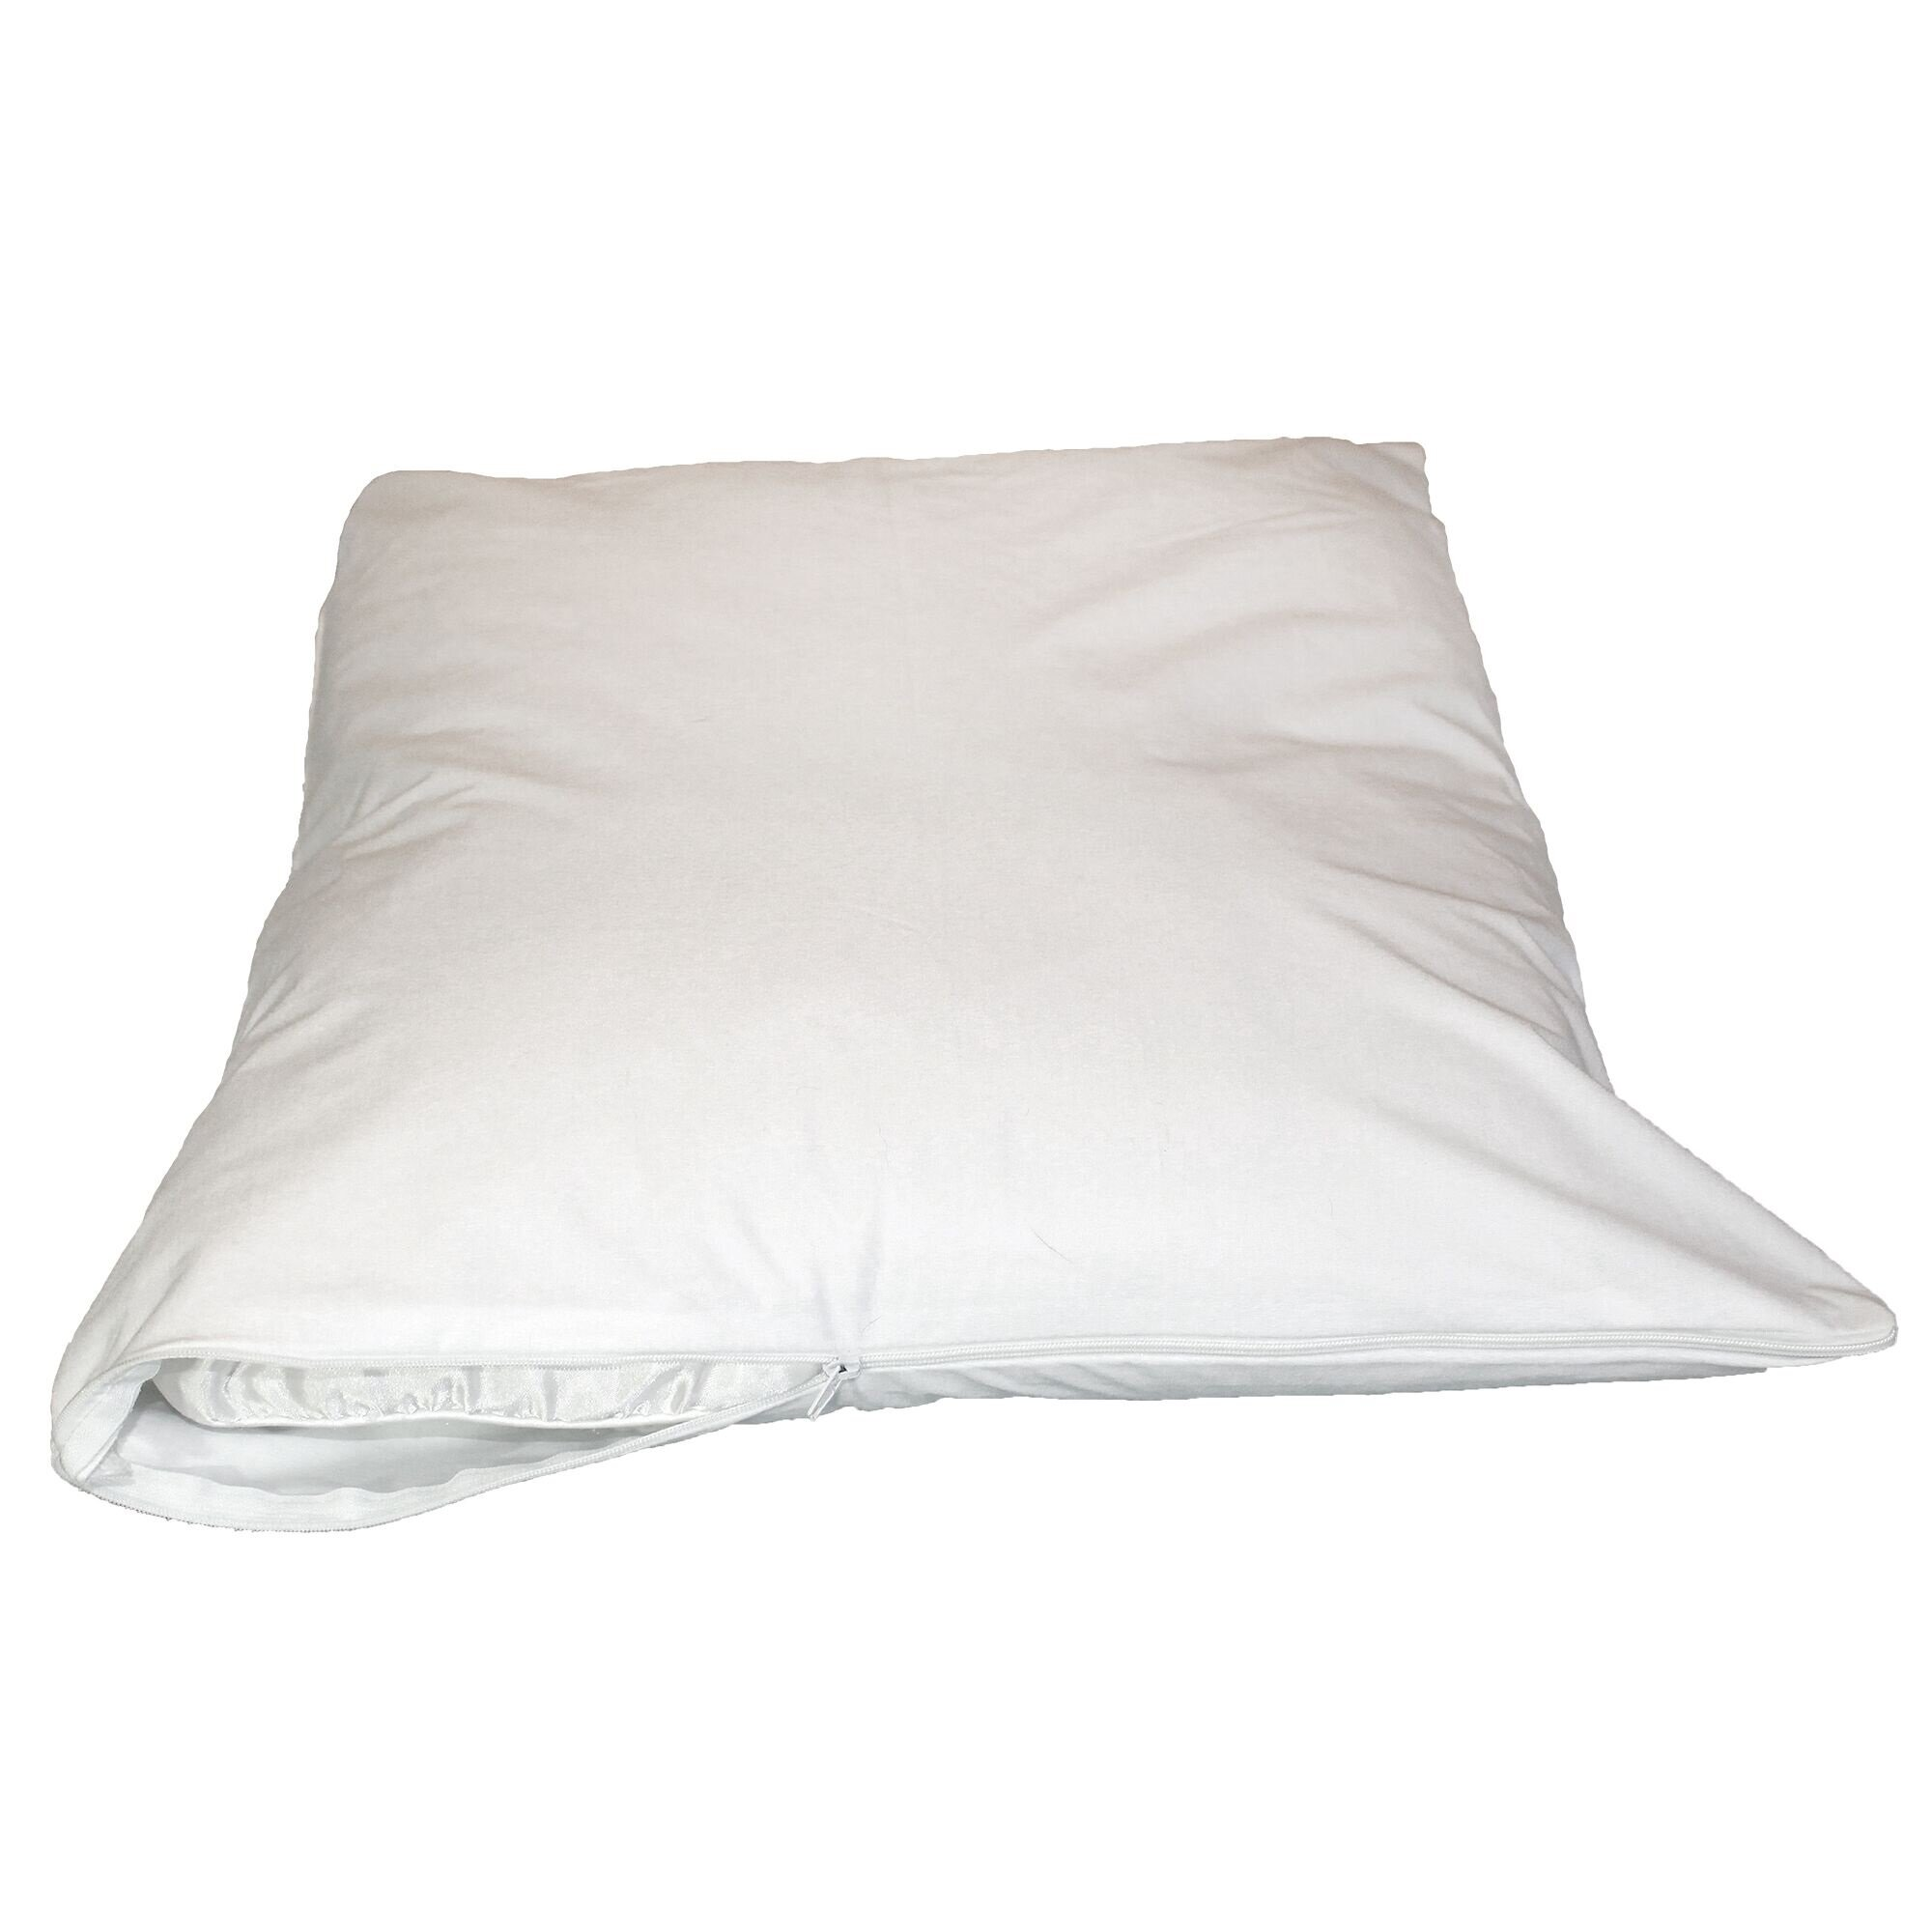 com protectors x dry photo and cons pros pillow of pillows